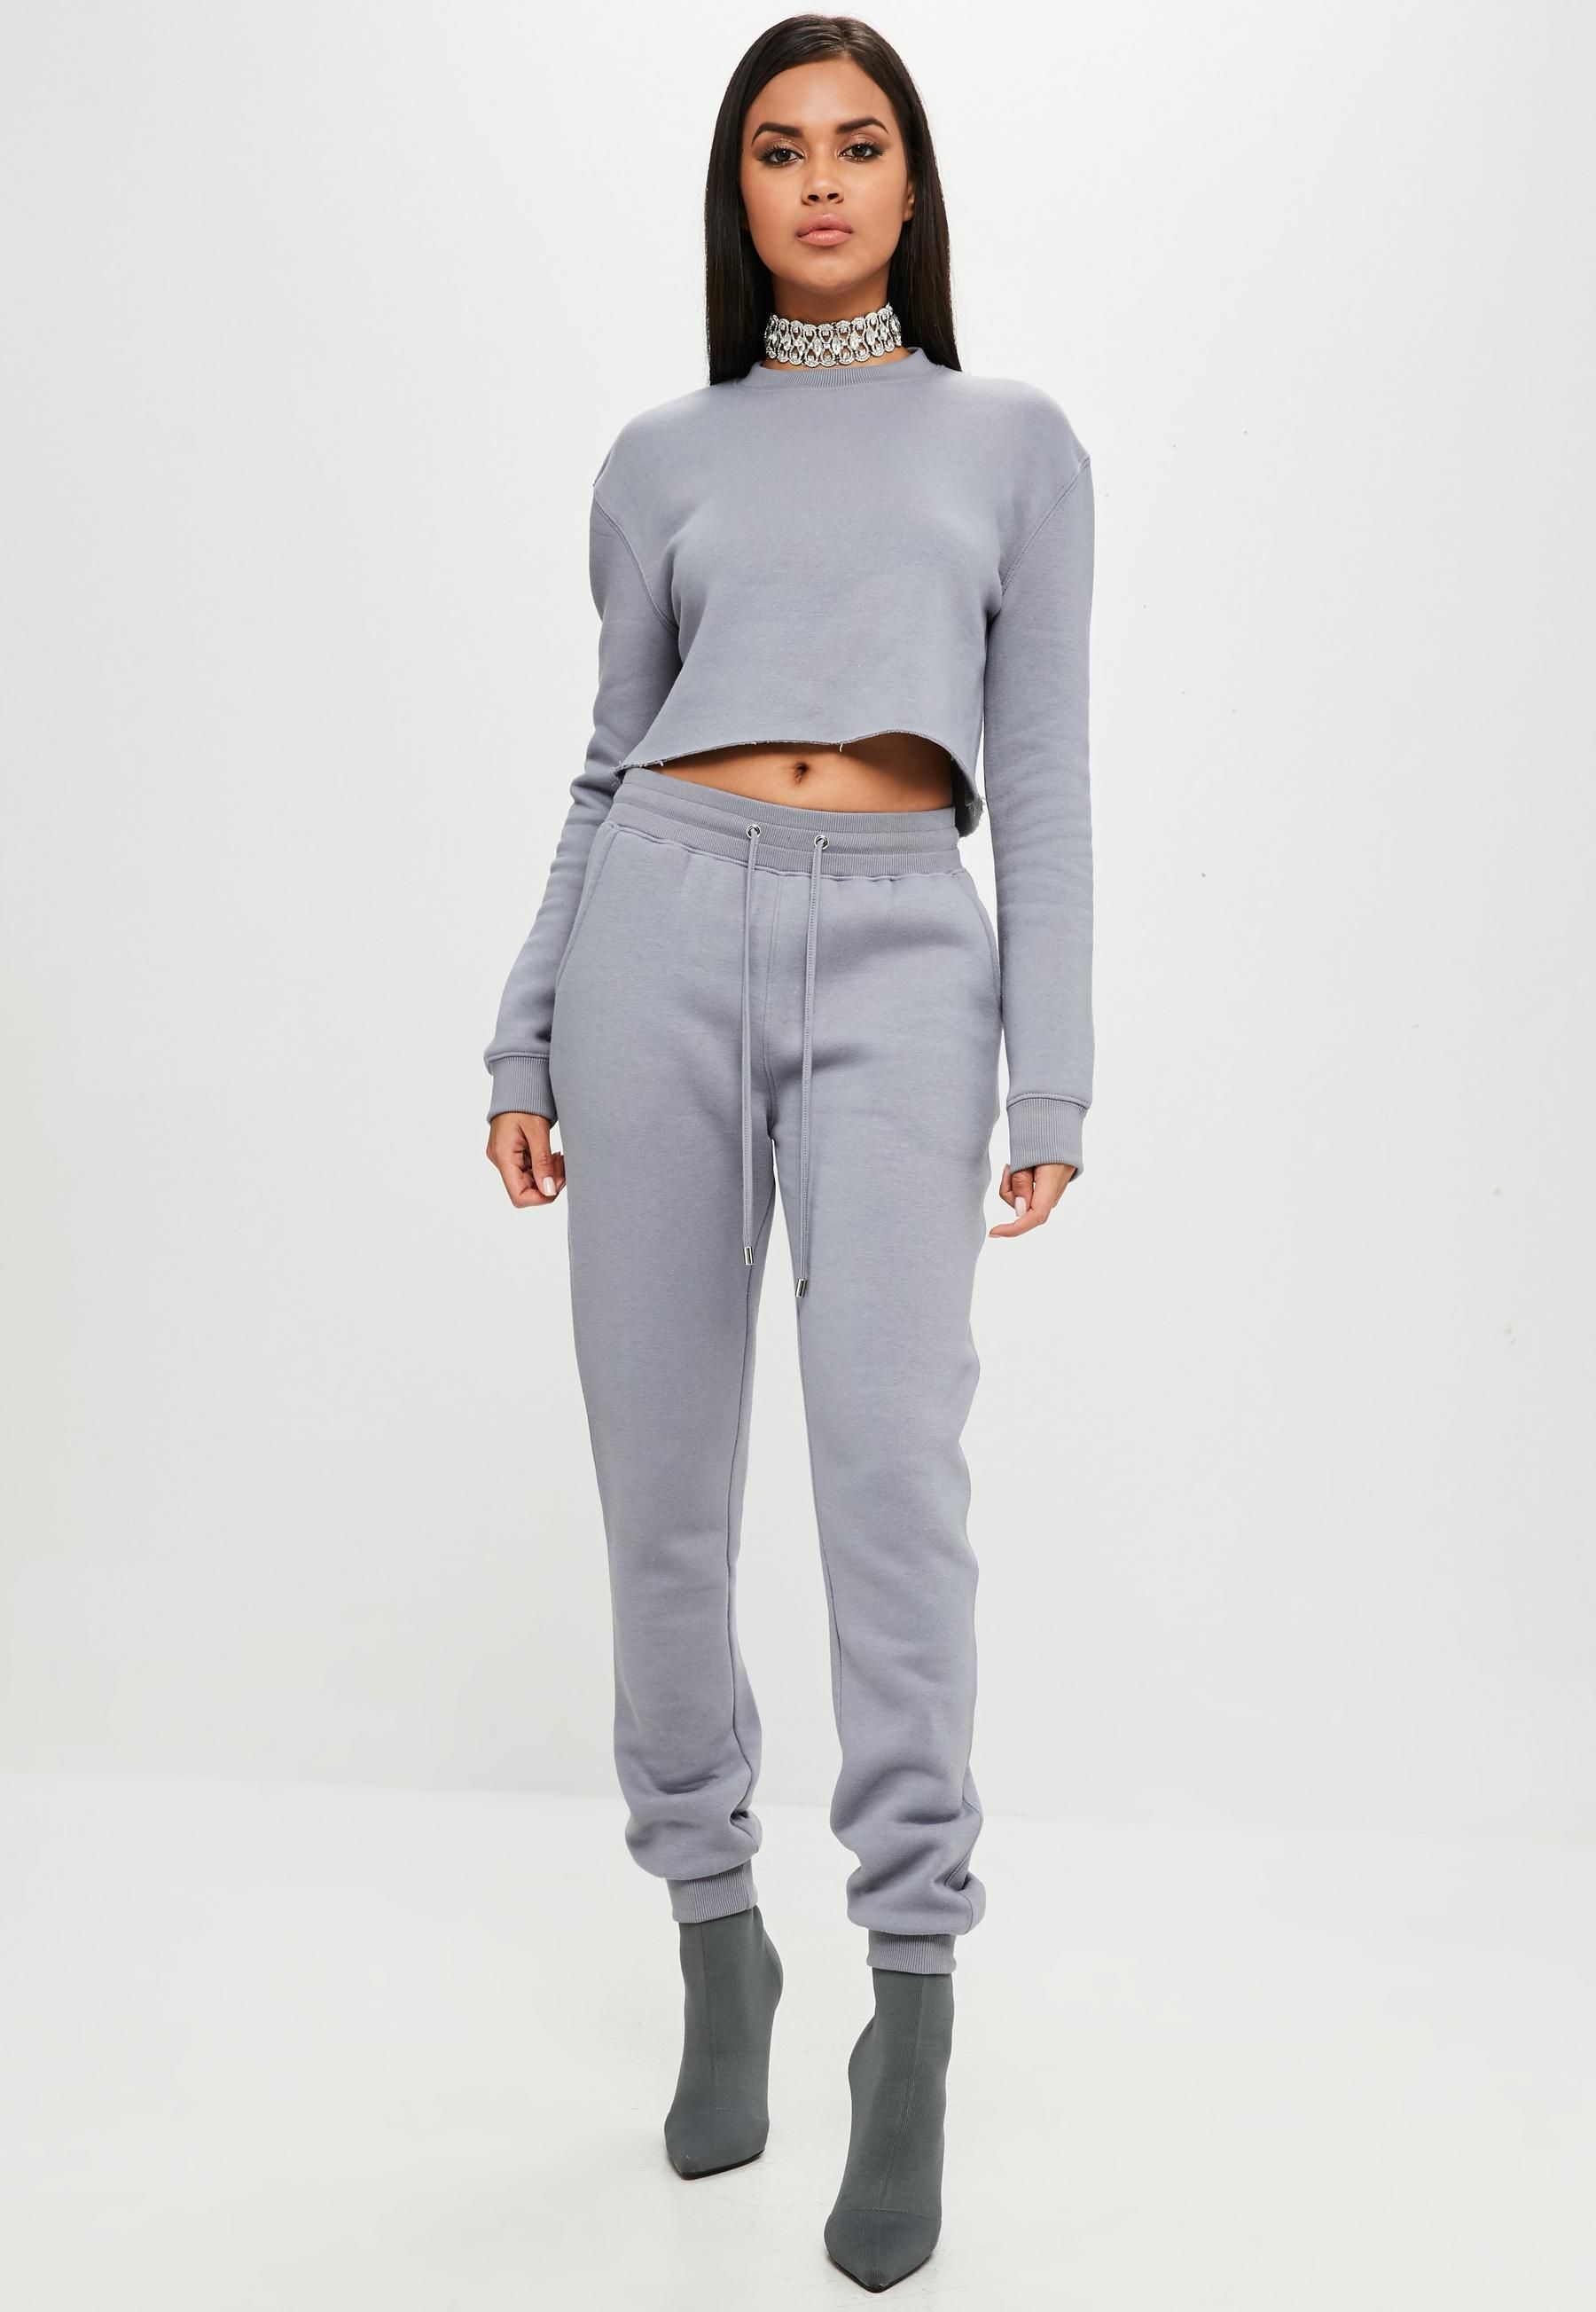 74a873db27a Carli Bybel x Missguided Gray Joggers